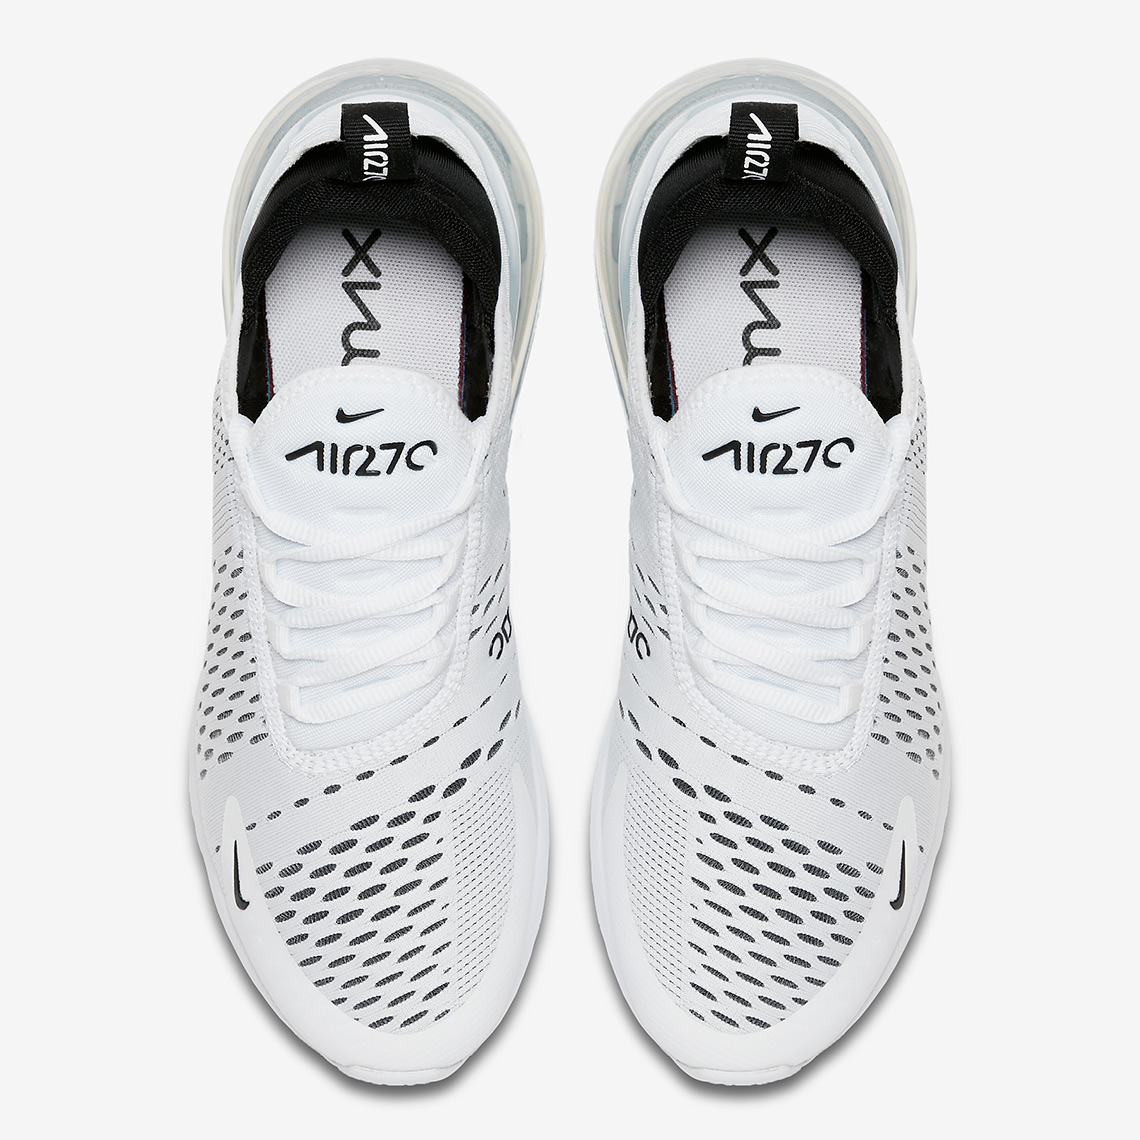 quality design ae832 0f1c1 Nike Air Max 270. Release Date March 2, 2018 150. Color WhiteBlack-White